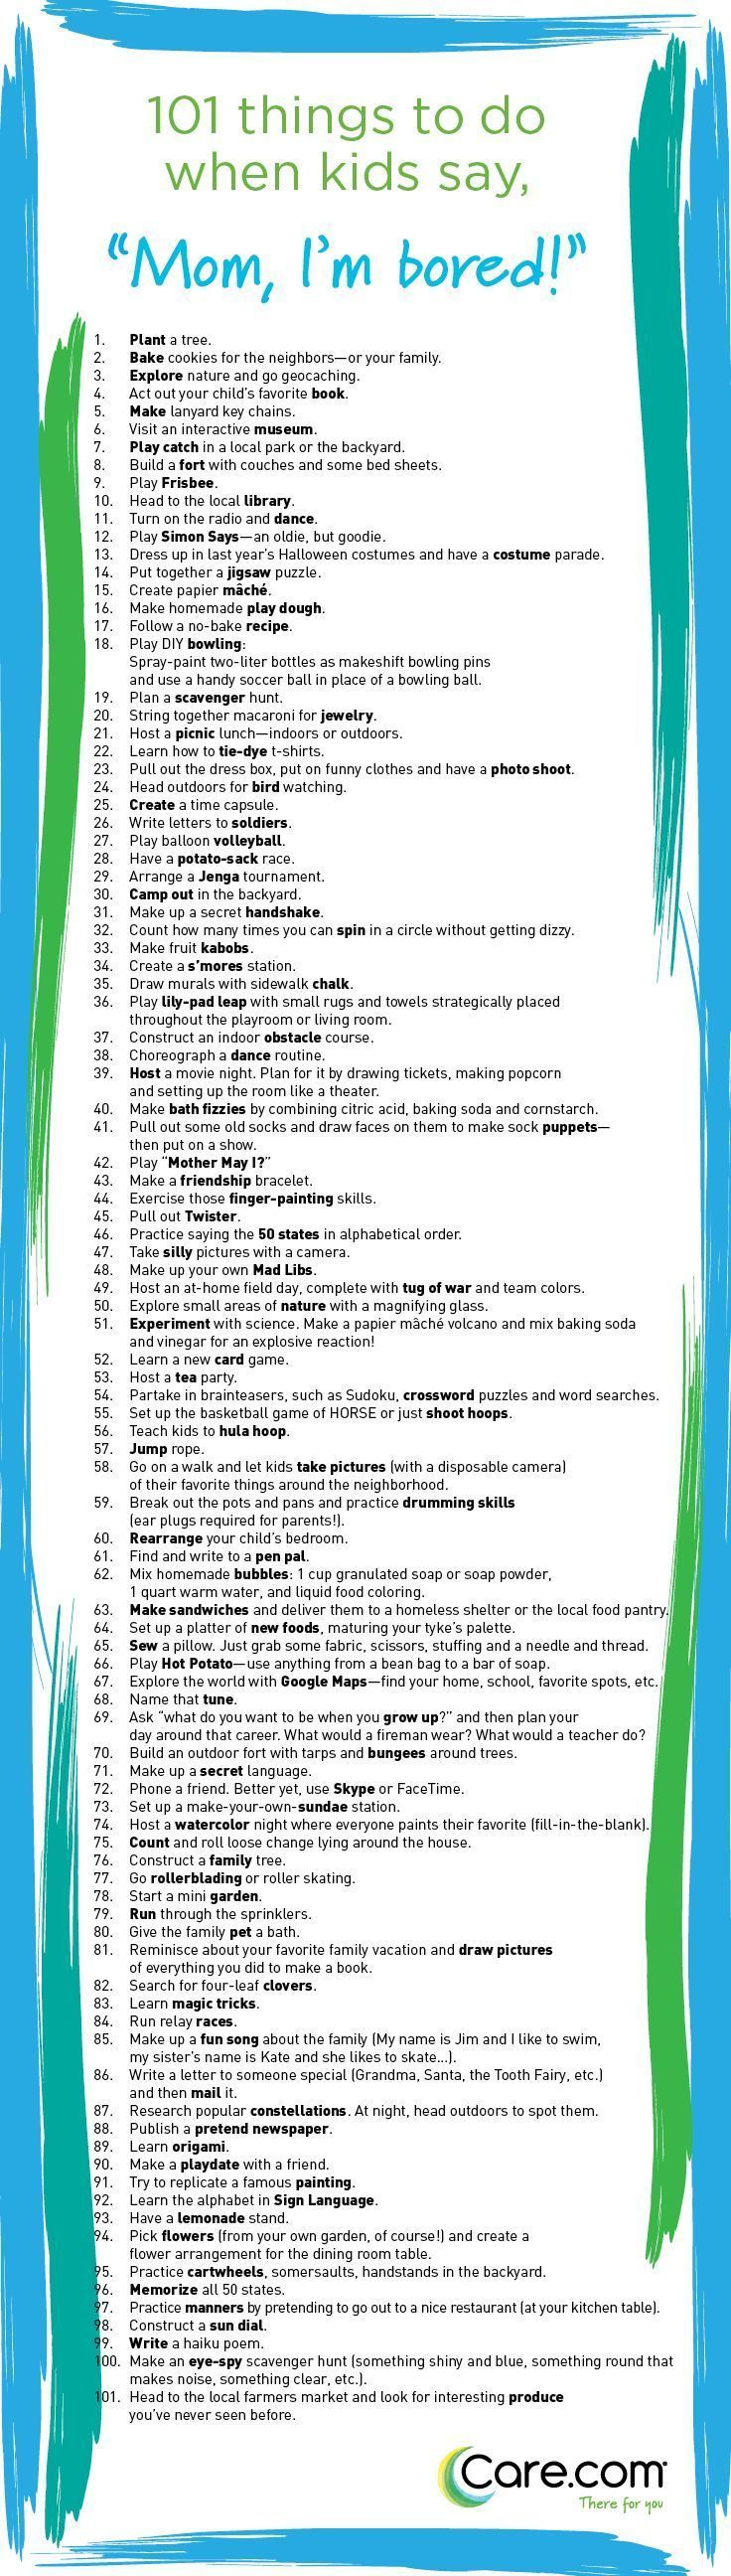 101 Things To Do When Kids Say I Am Bored kids parents children parenting encouraging parenting ideas parenting tips activities for kids